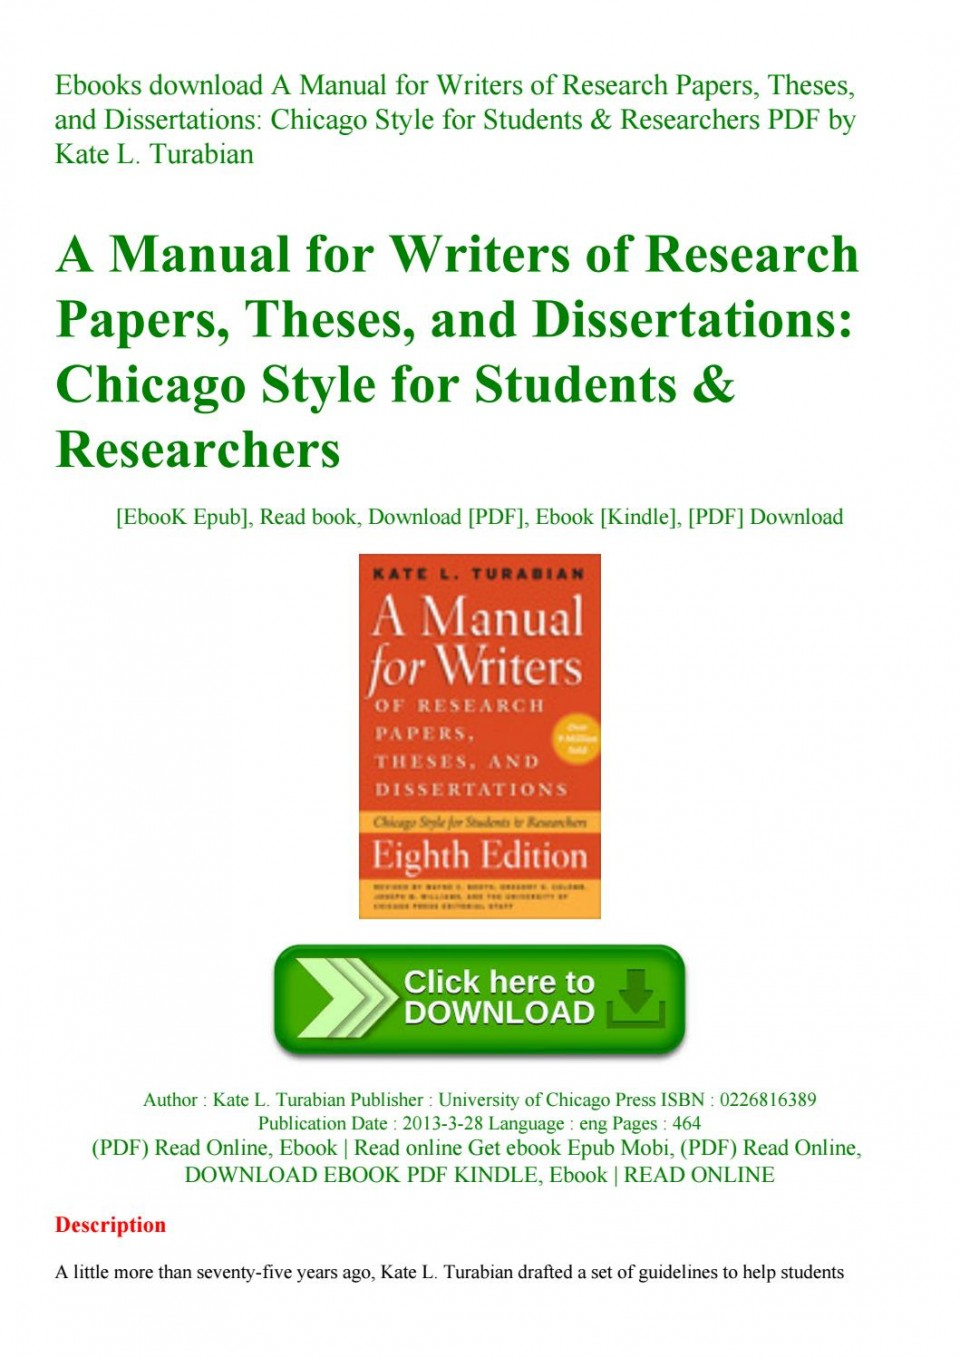 018 Page 1 Research Paper Manual For Writers Of Papers Theses And Sensational A Dissertations Ed. 8 8th Edition Ninth Pdf 960